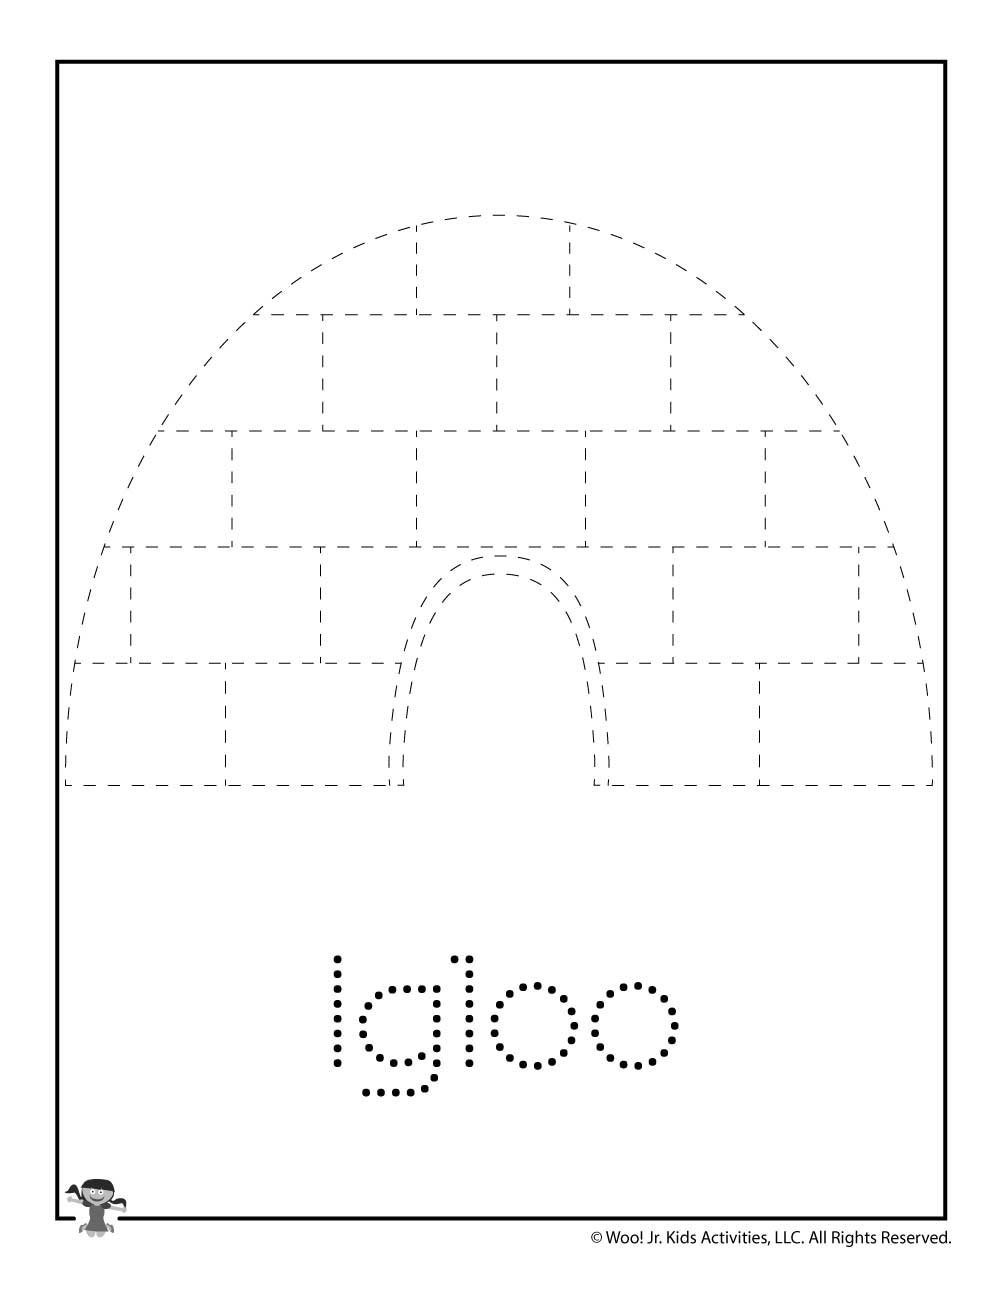 igloo-i-tracing Valentine Friendly Letter Template on valentine writing paper blank worksheets, valentine love printable templets, writing paper with borders template, valentine lined writing paper, valentine printable handwriting page, valentine heart with outline of lines,